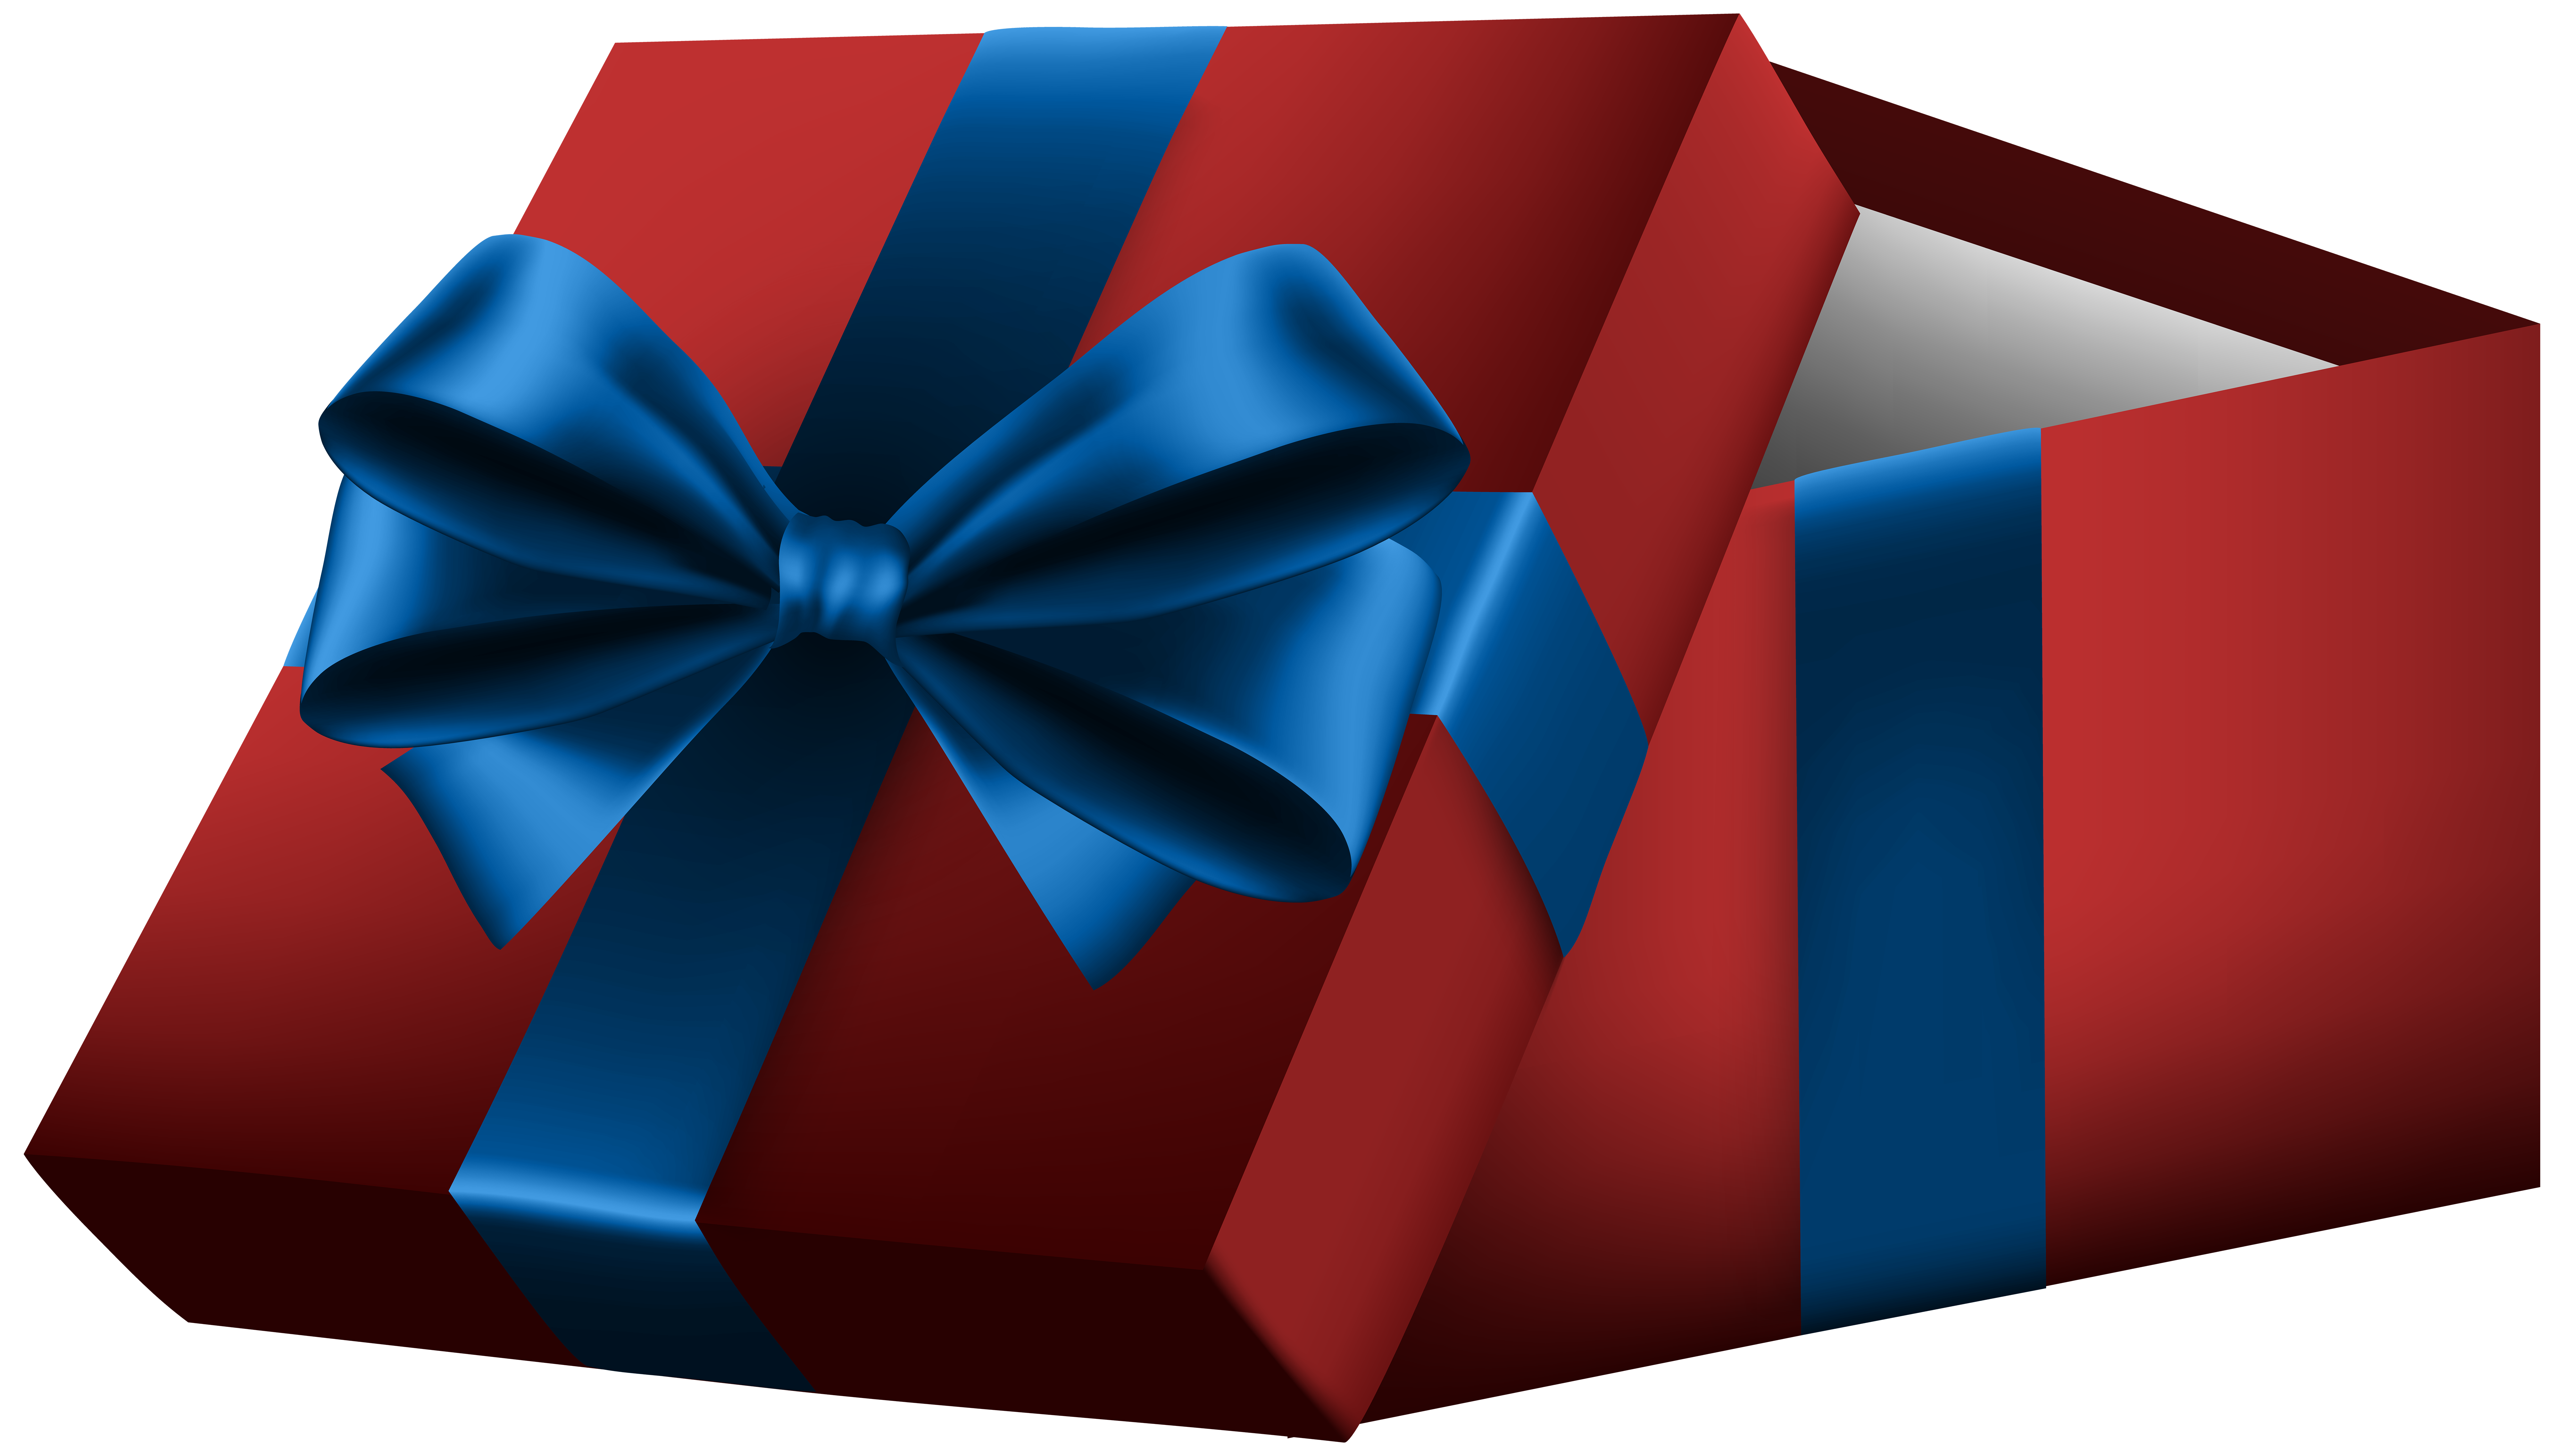 Free Clipart Gift Box   Free download on ClipArtMag